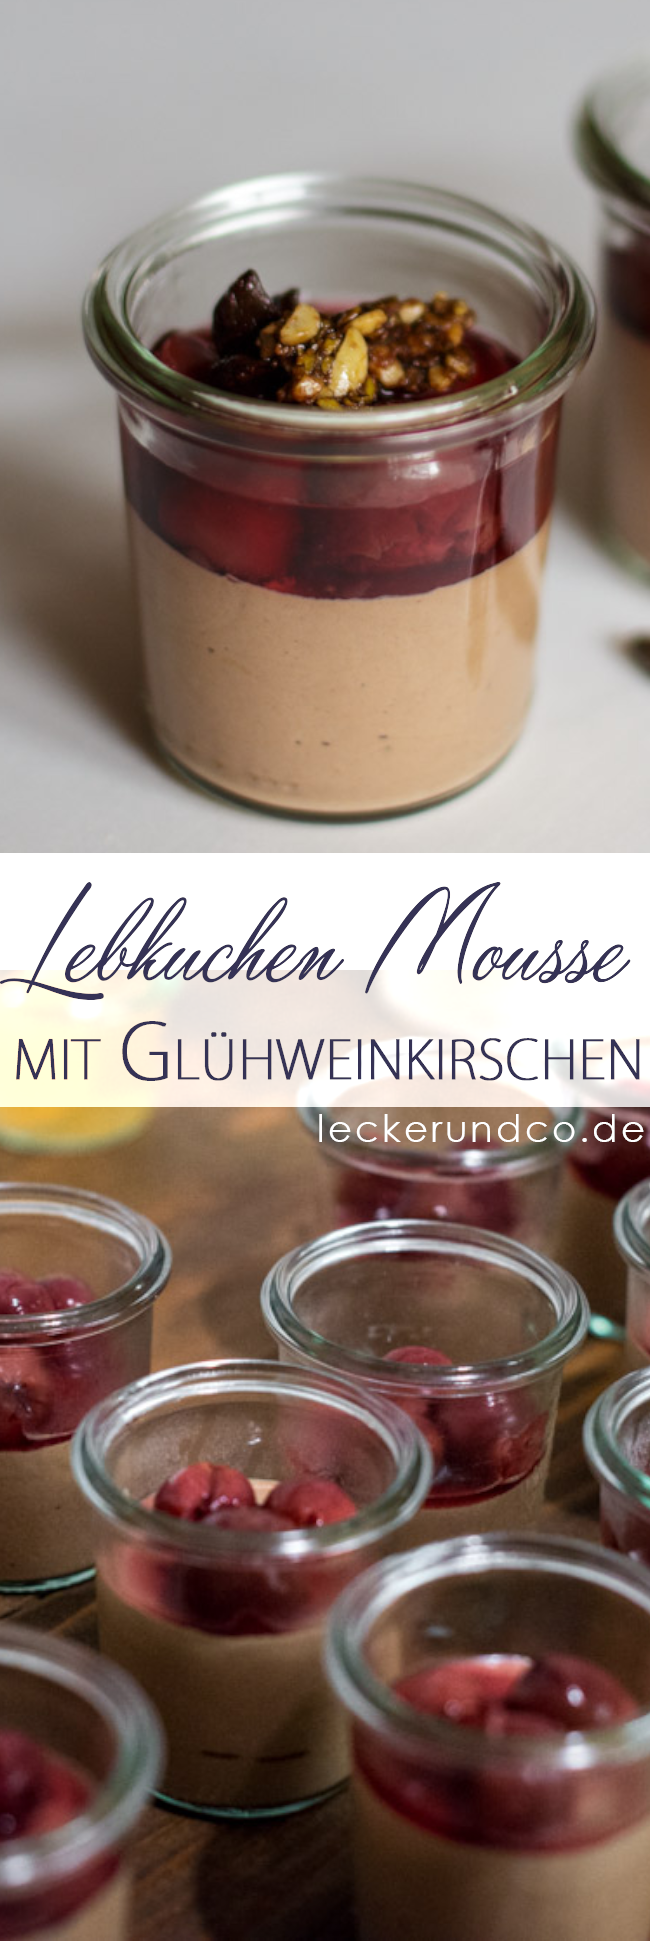 lebkuchen mousse mit gl hwein kirschen und nusskrokant. Black Bedroom Furniture Sets. Home Design Ideas